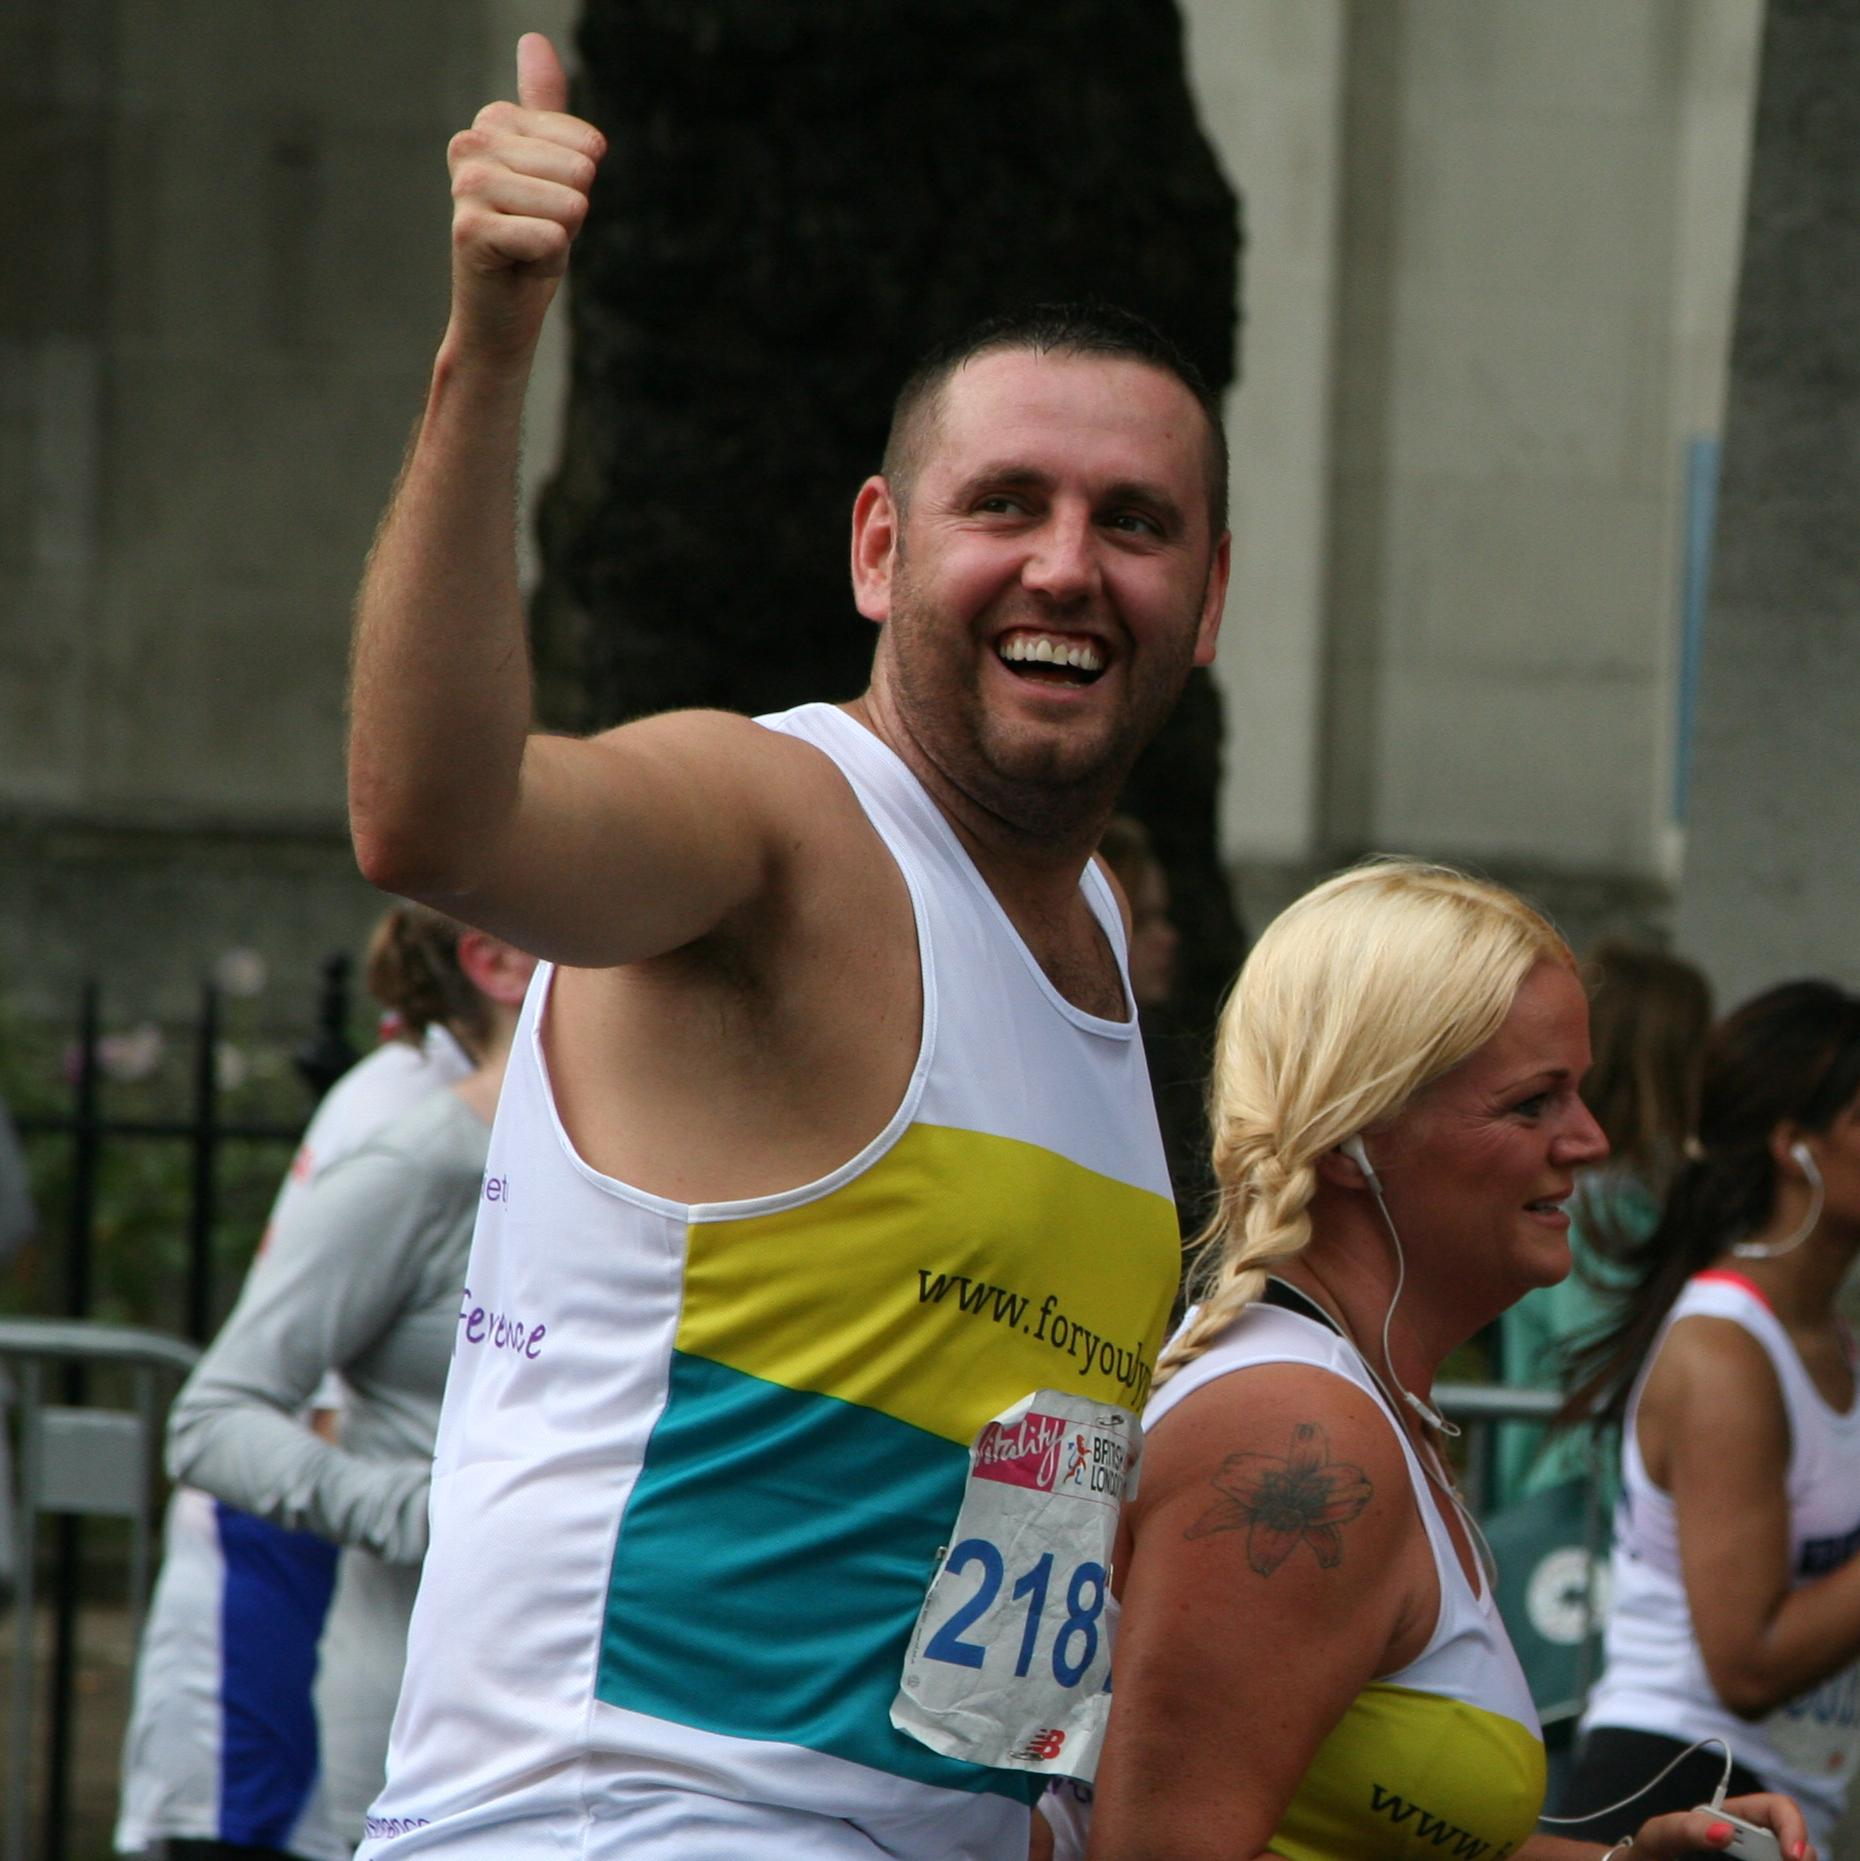 David, one of our 10K runners, giving a thumbs up halfway around the course.